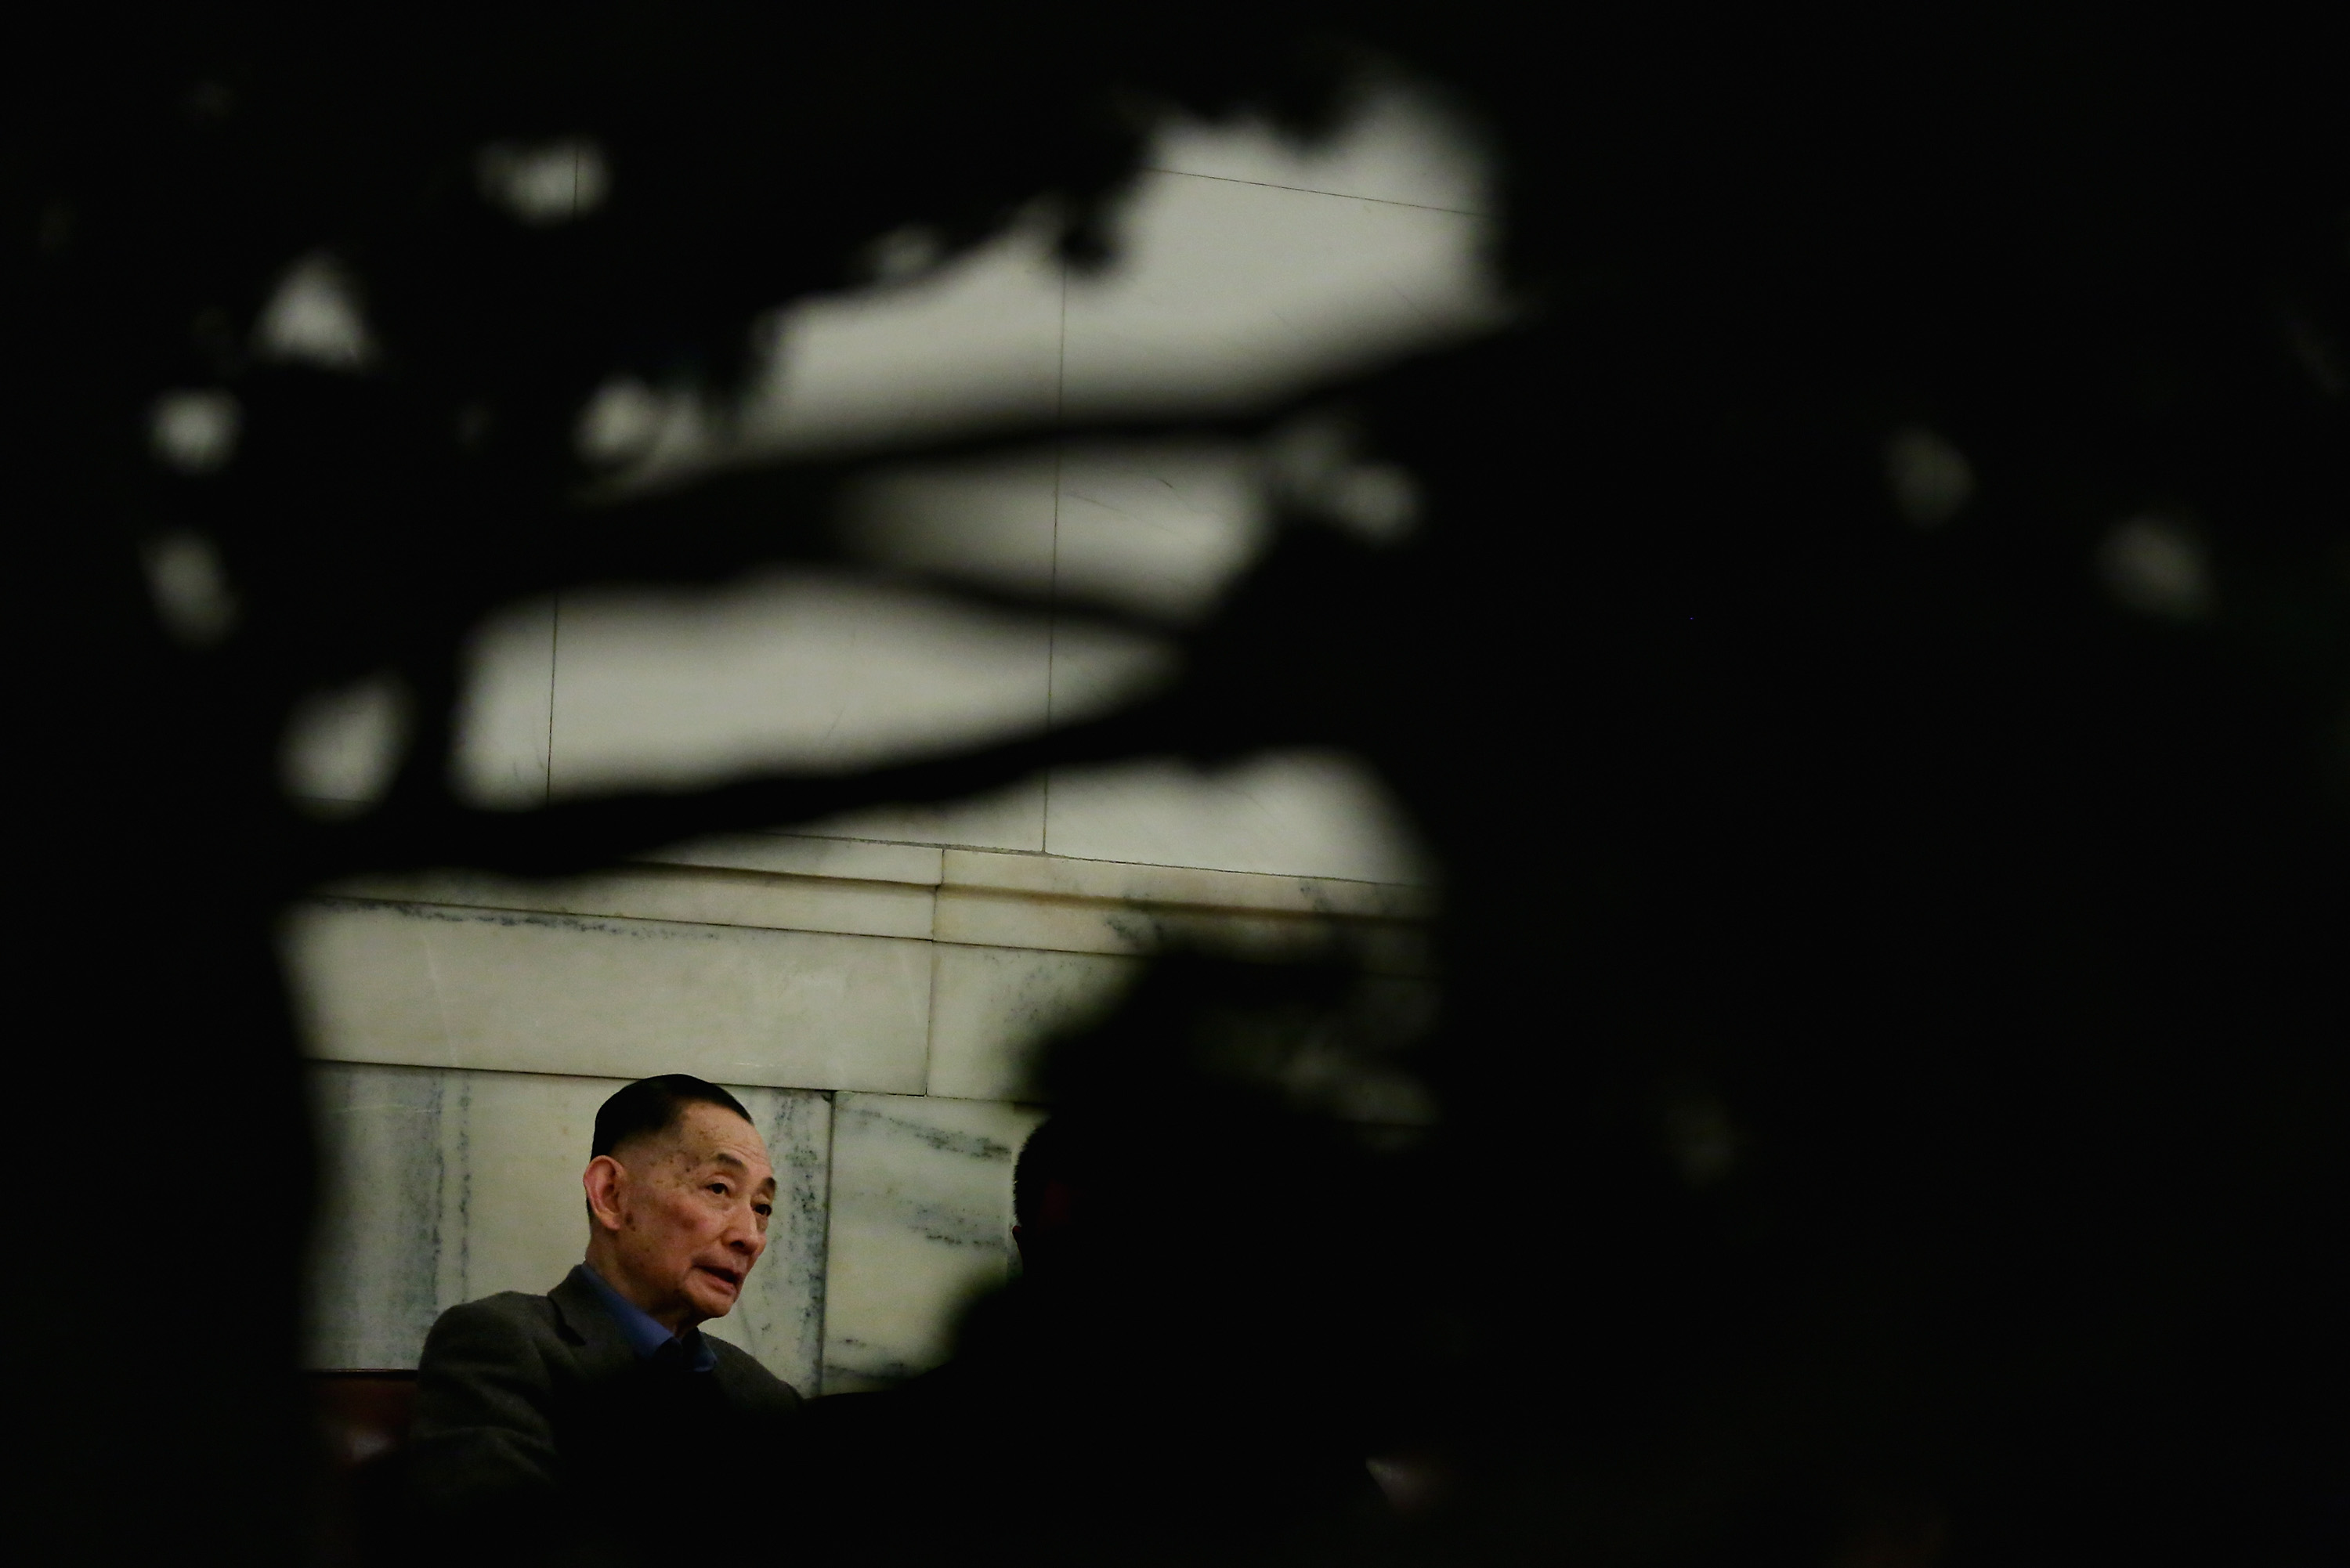 Mei Baojiu, Peking opera master, rests outside the meeting room of the Great Hall of the People during a plenary session of the Chinese People's Political Consultative Conference, at which he is a delegate, on March 7, 2013, in Beijing